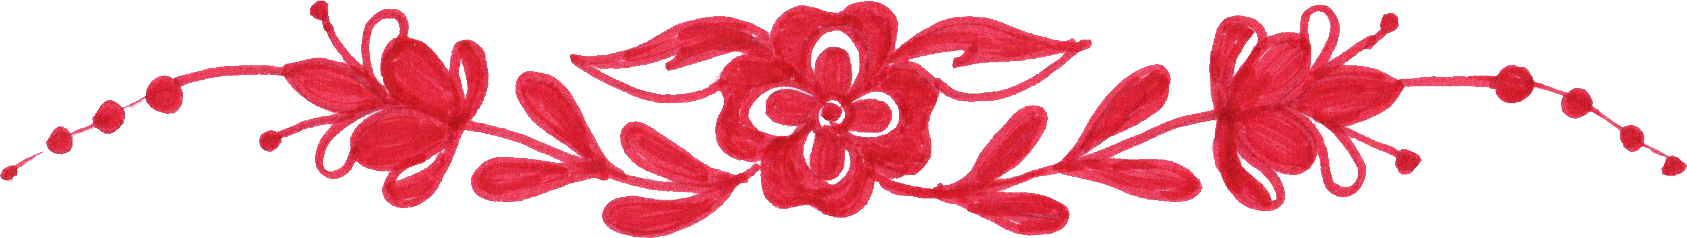 Flowers border png. Red flower drawing